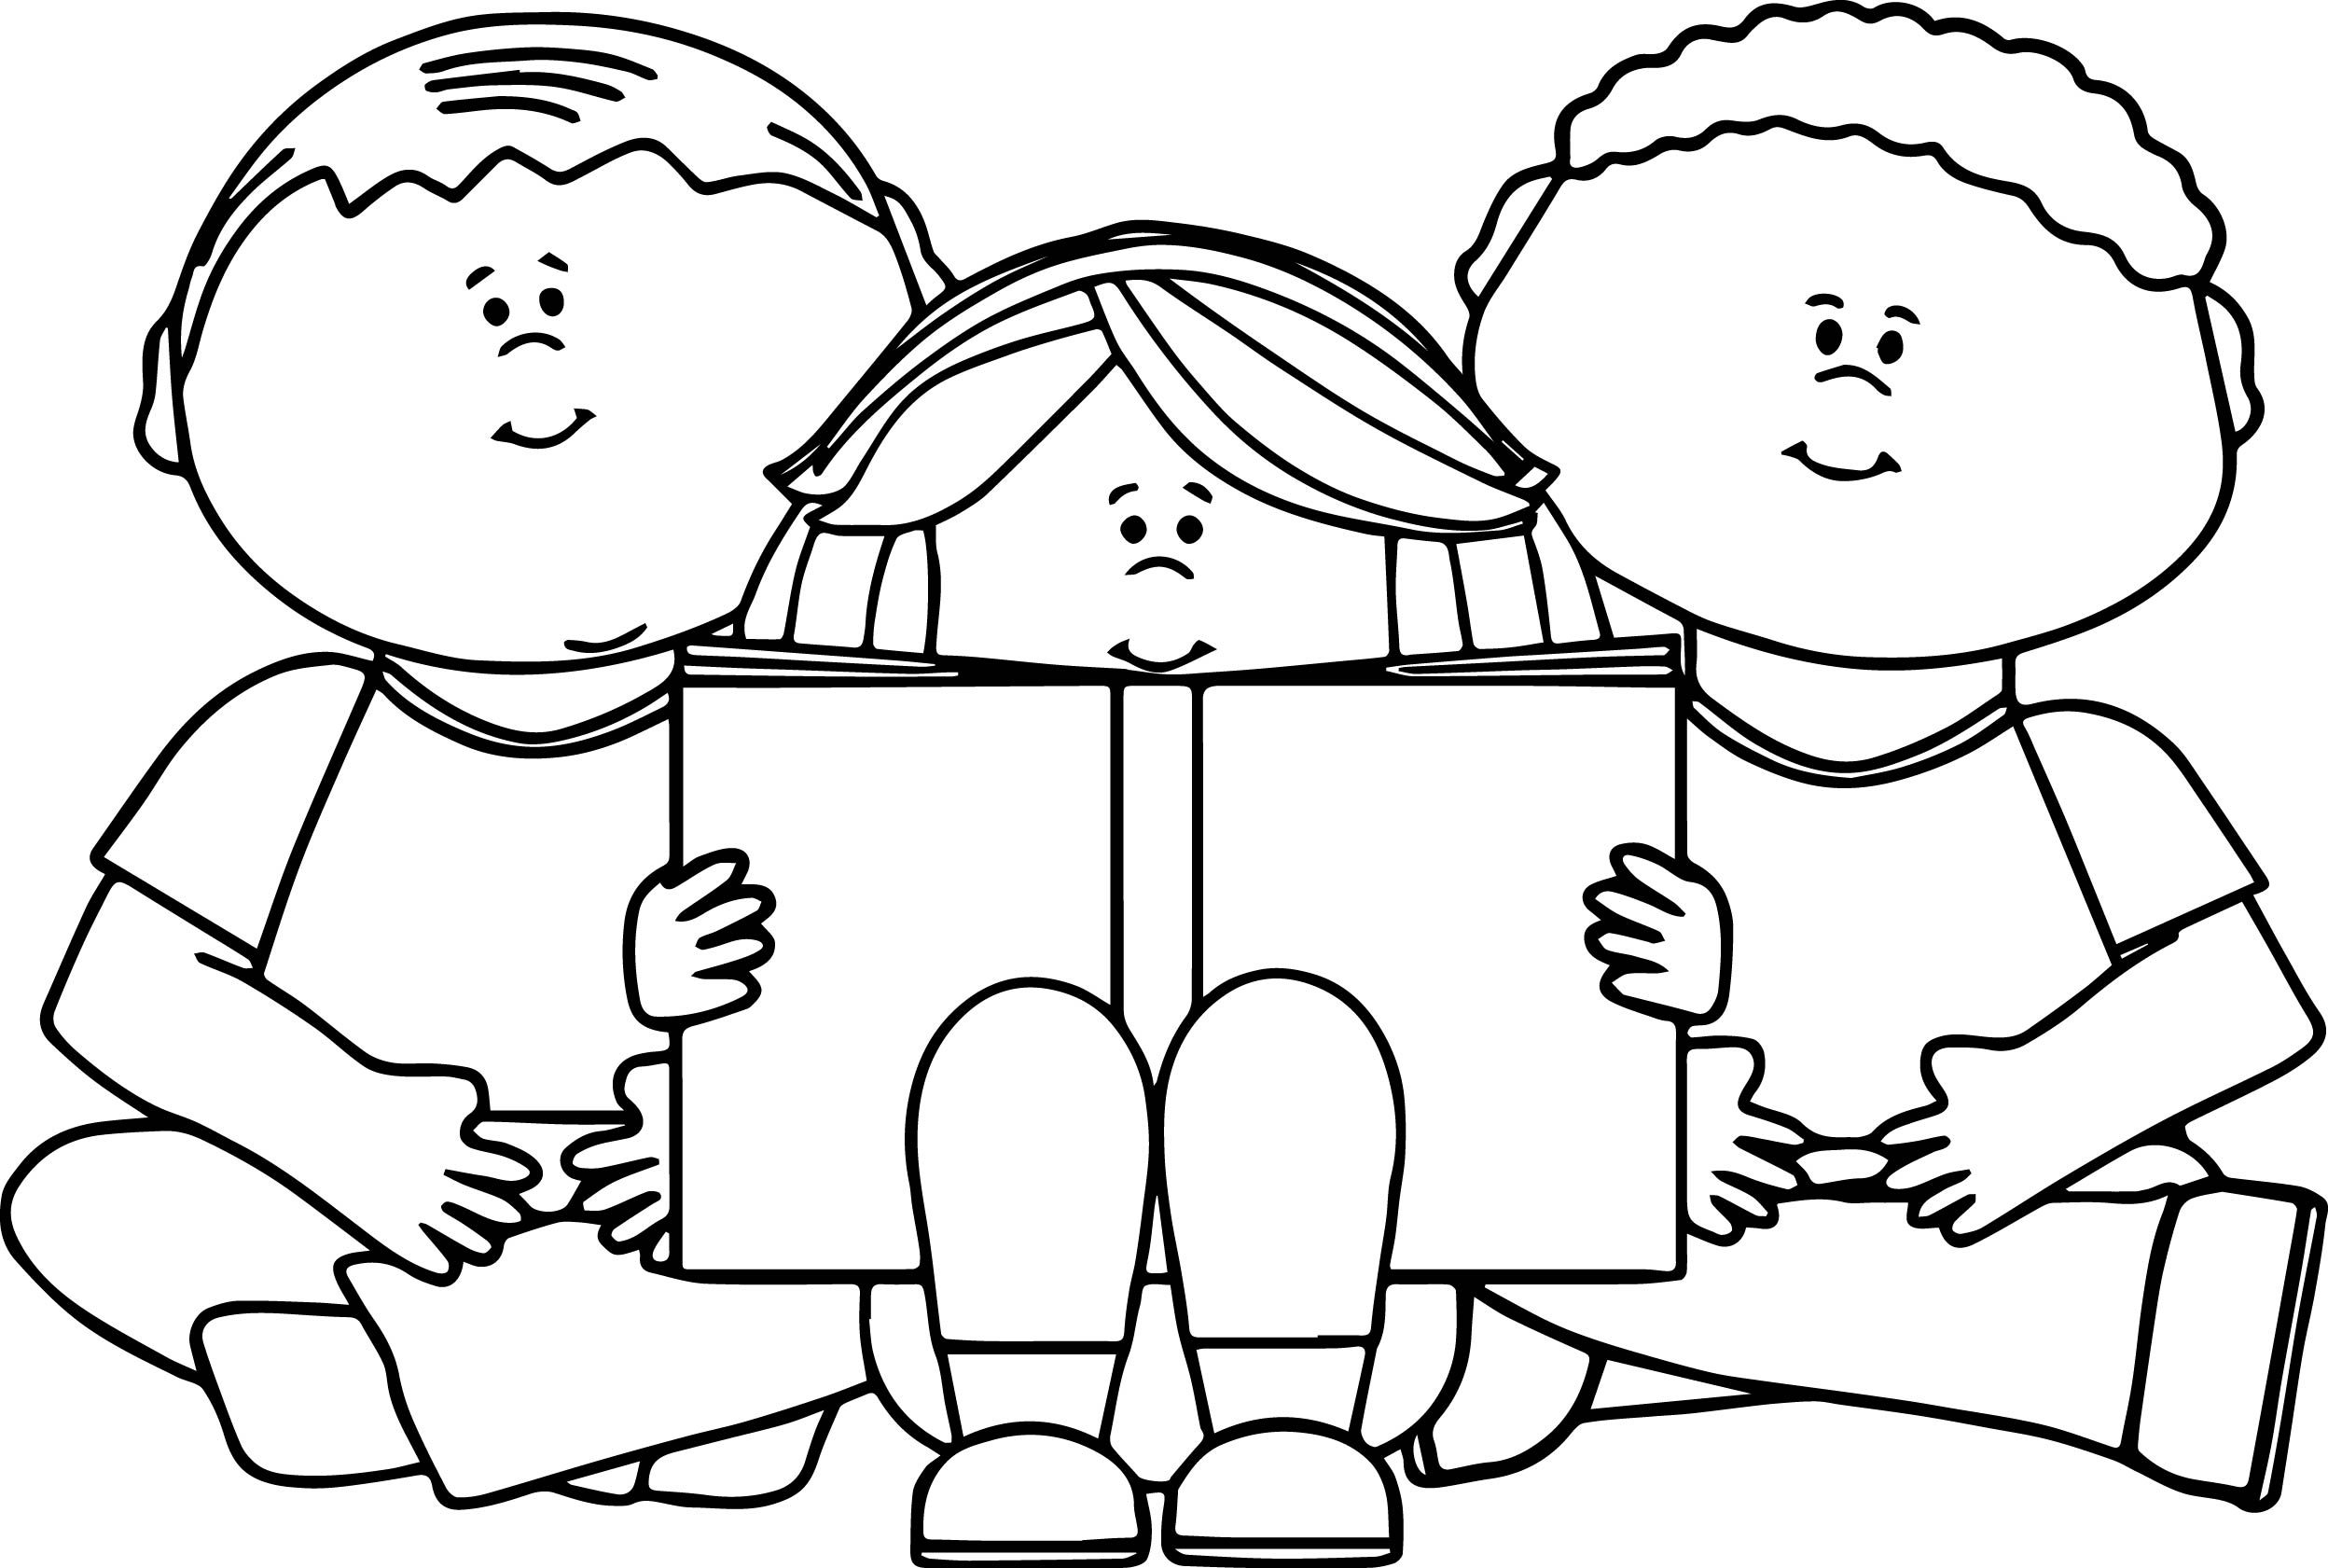 Kids reading book coloring page for Coloring page book